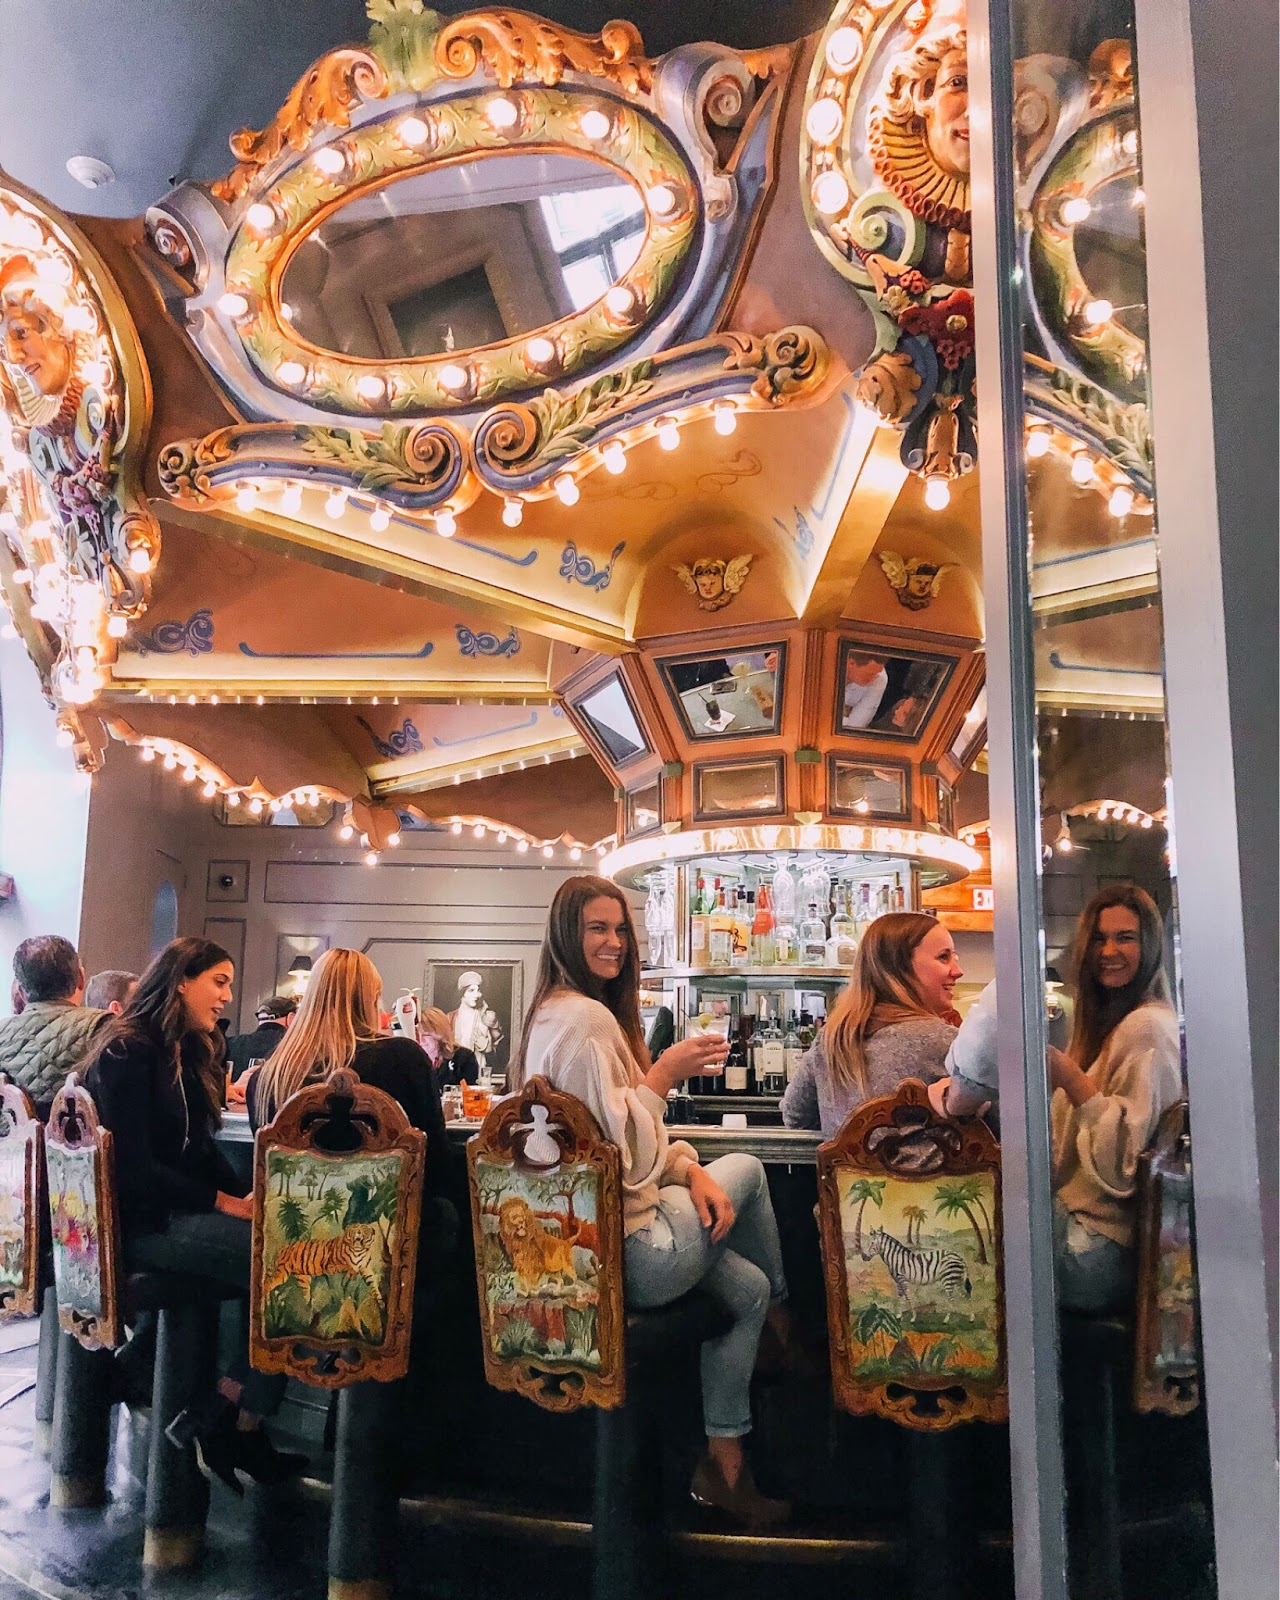 Travel blogger posing at The Carousel Bar located inside of the Hotel Monteleone in New Orleans